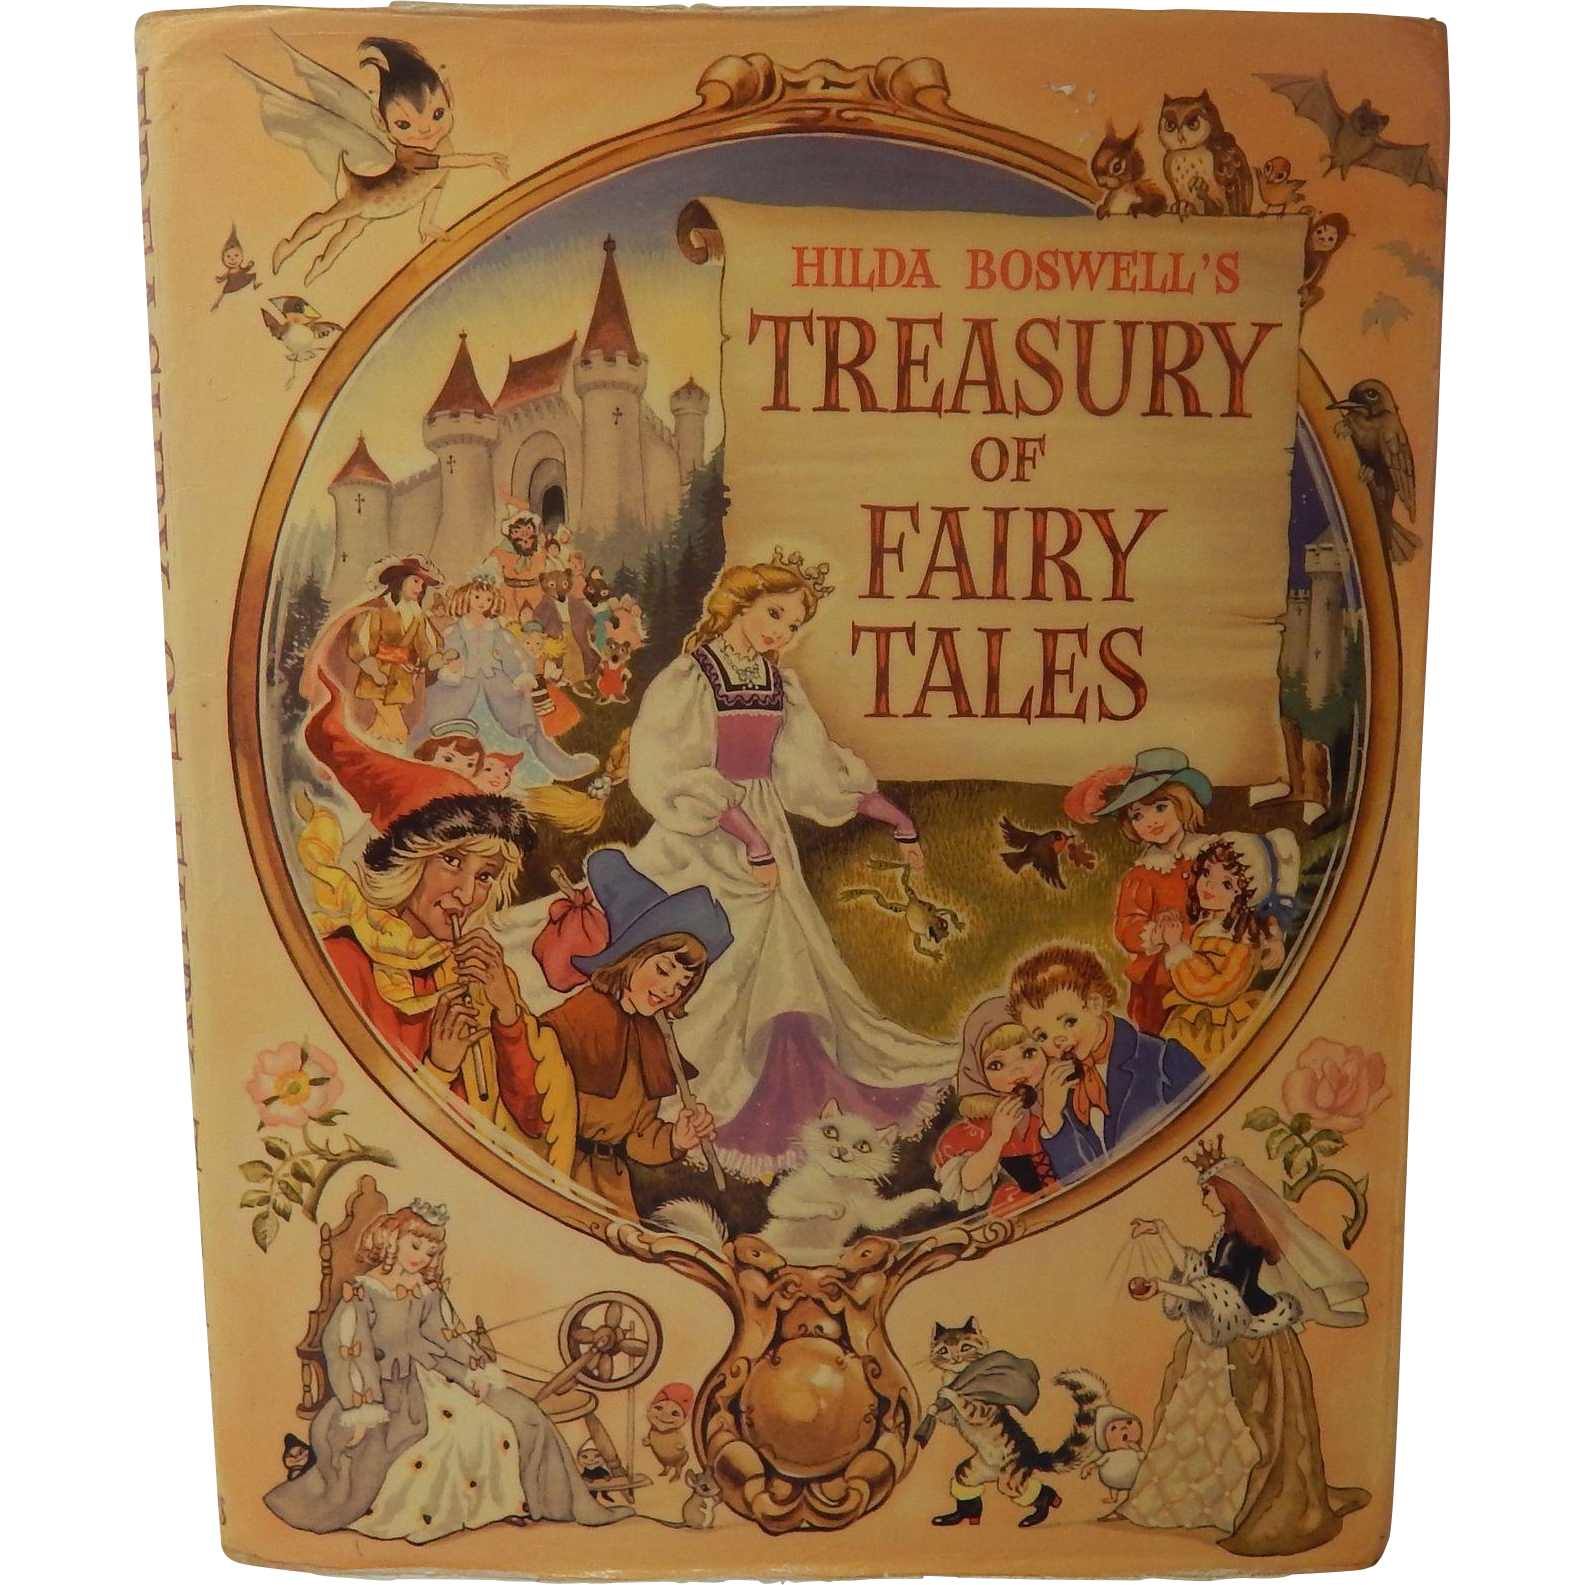 Hilda Boswell's Treasury Of Fairy Tales